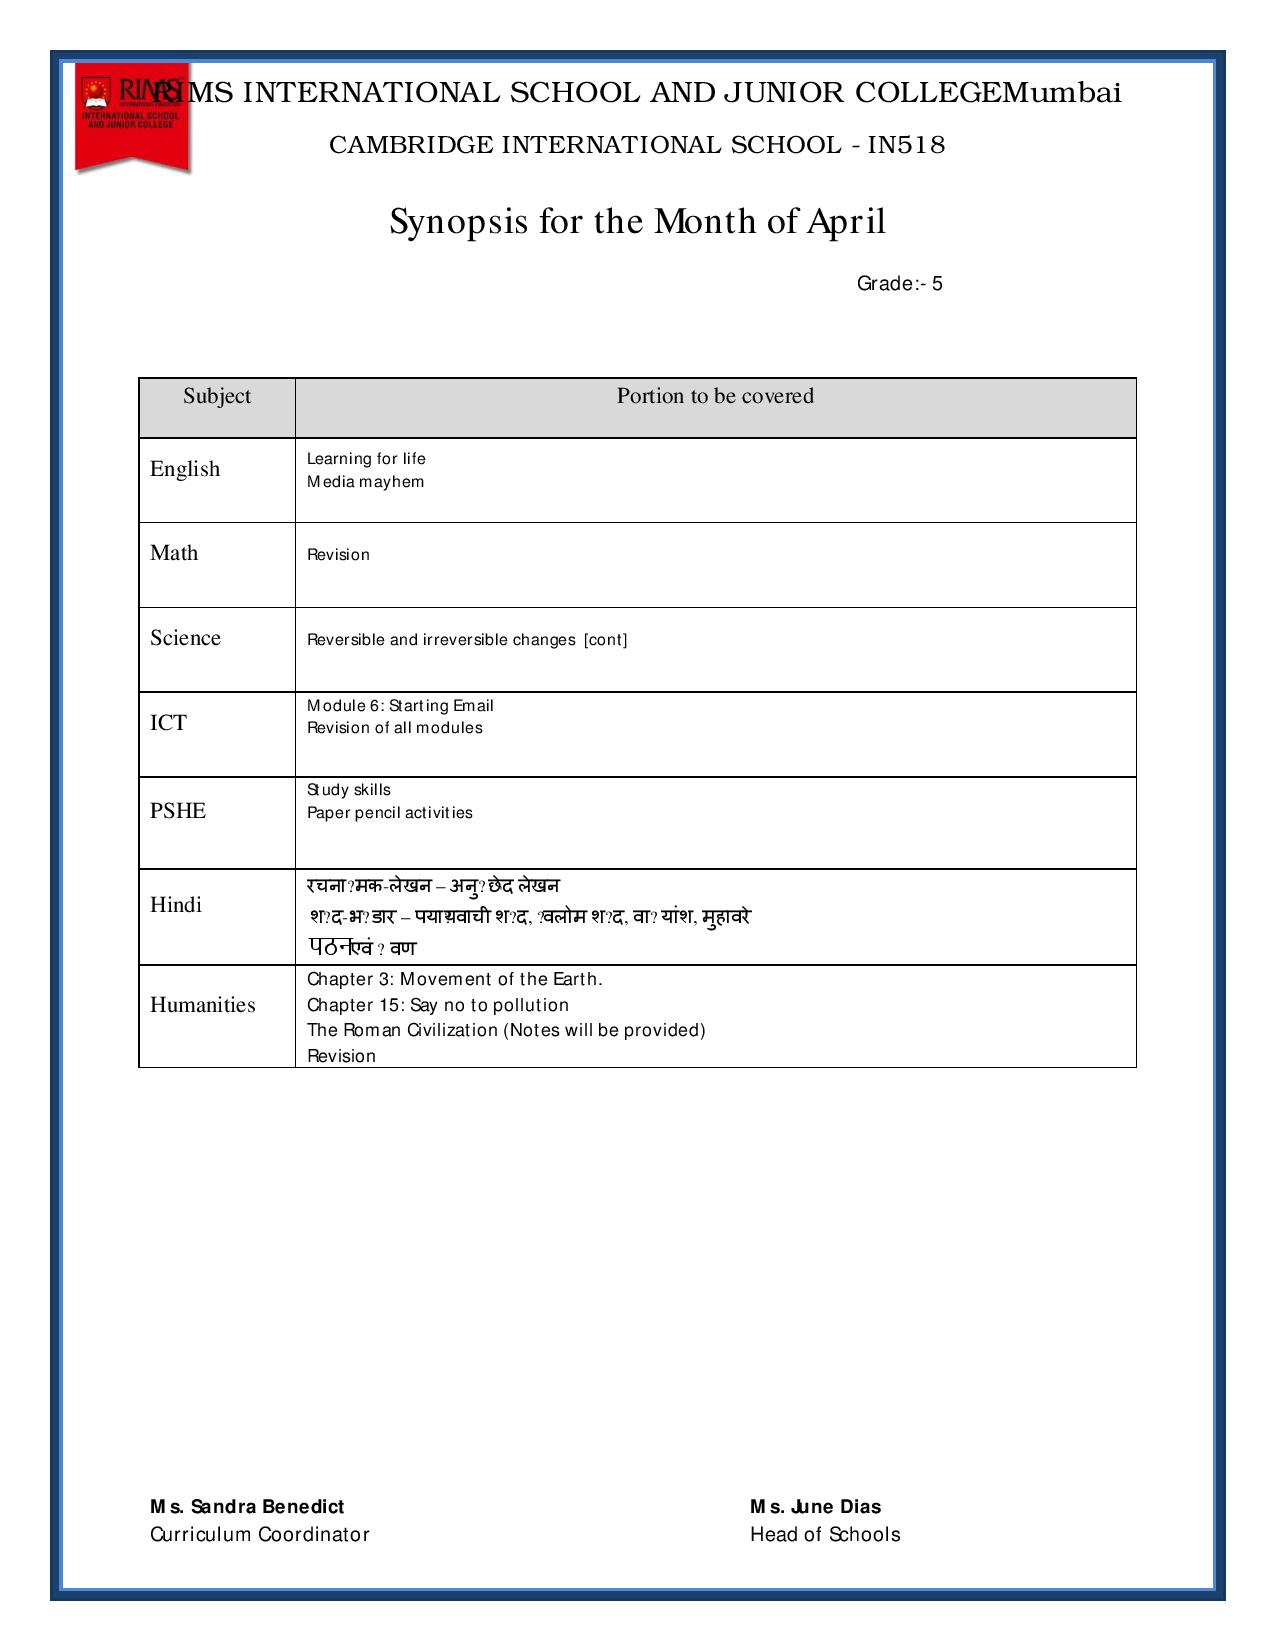 Synopsis for the Month of April - Grade 5